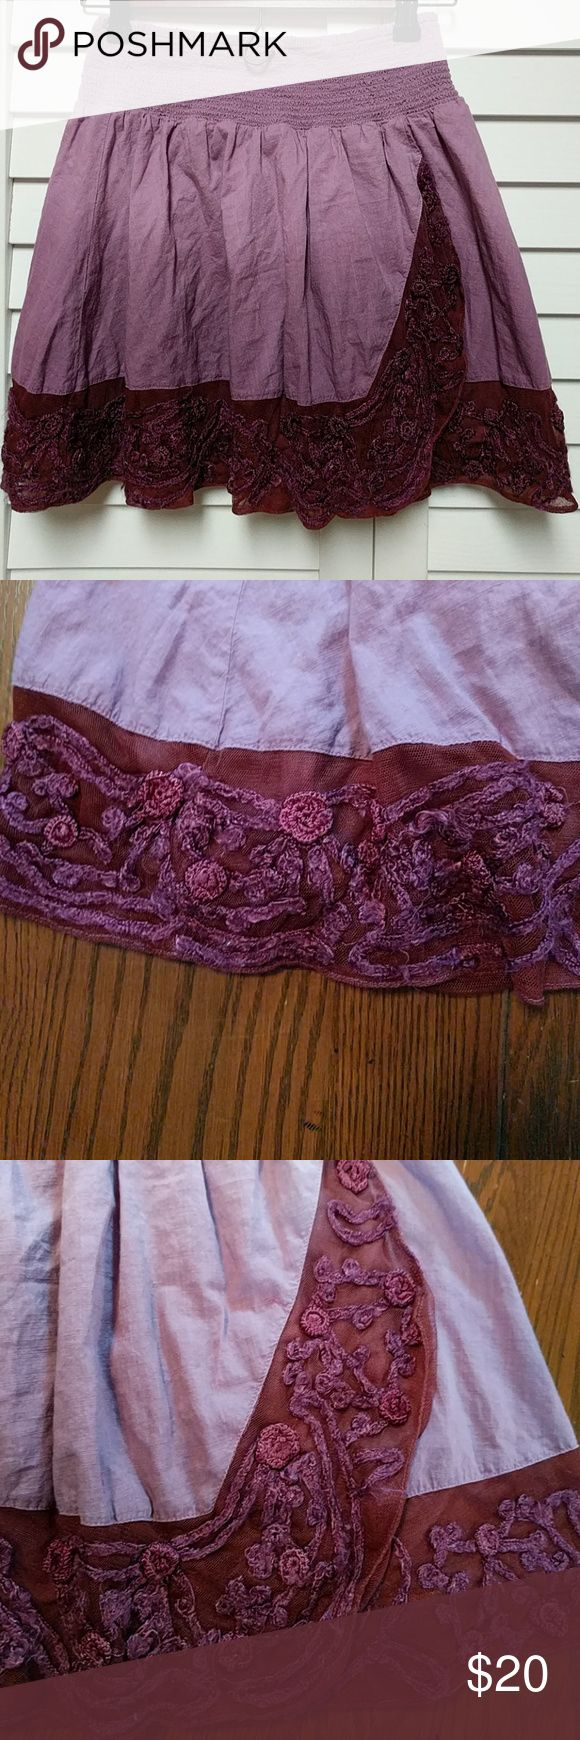 """Free People Ombre Lace Hem Skirt This ombre skirt is in good used condition, the lace hem has pulling as shown in pictures. The waist is a elastic. No stains or rips. From a smoke and pet free home.  13"""" Waist Free People Skirts"""